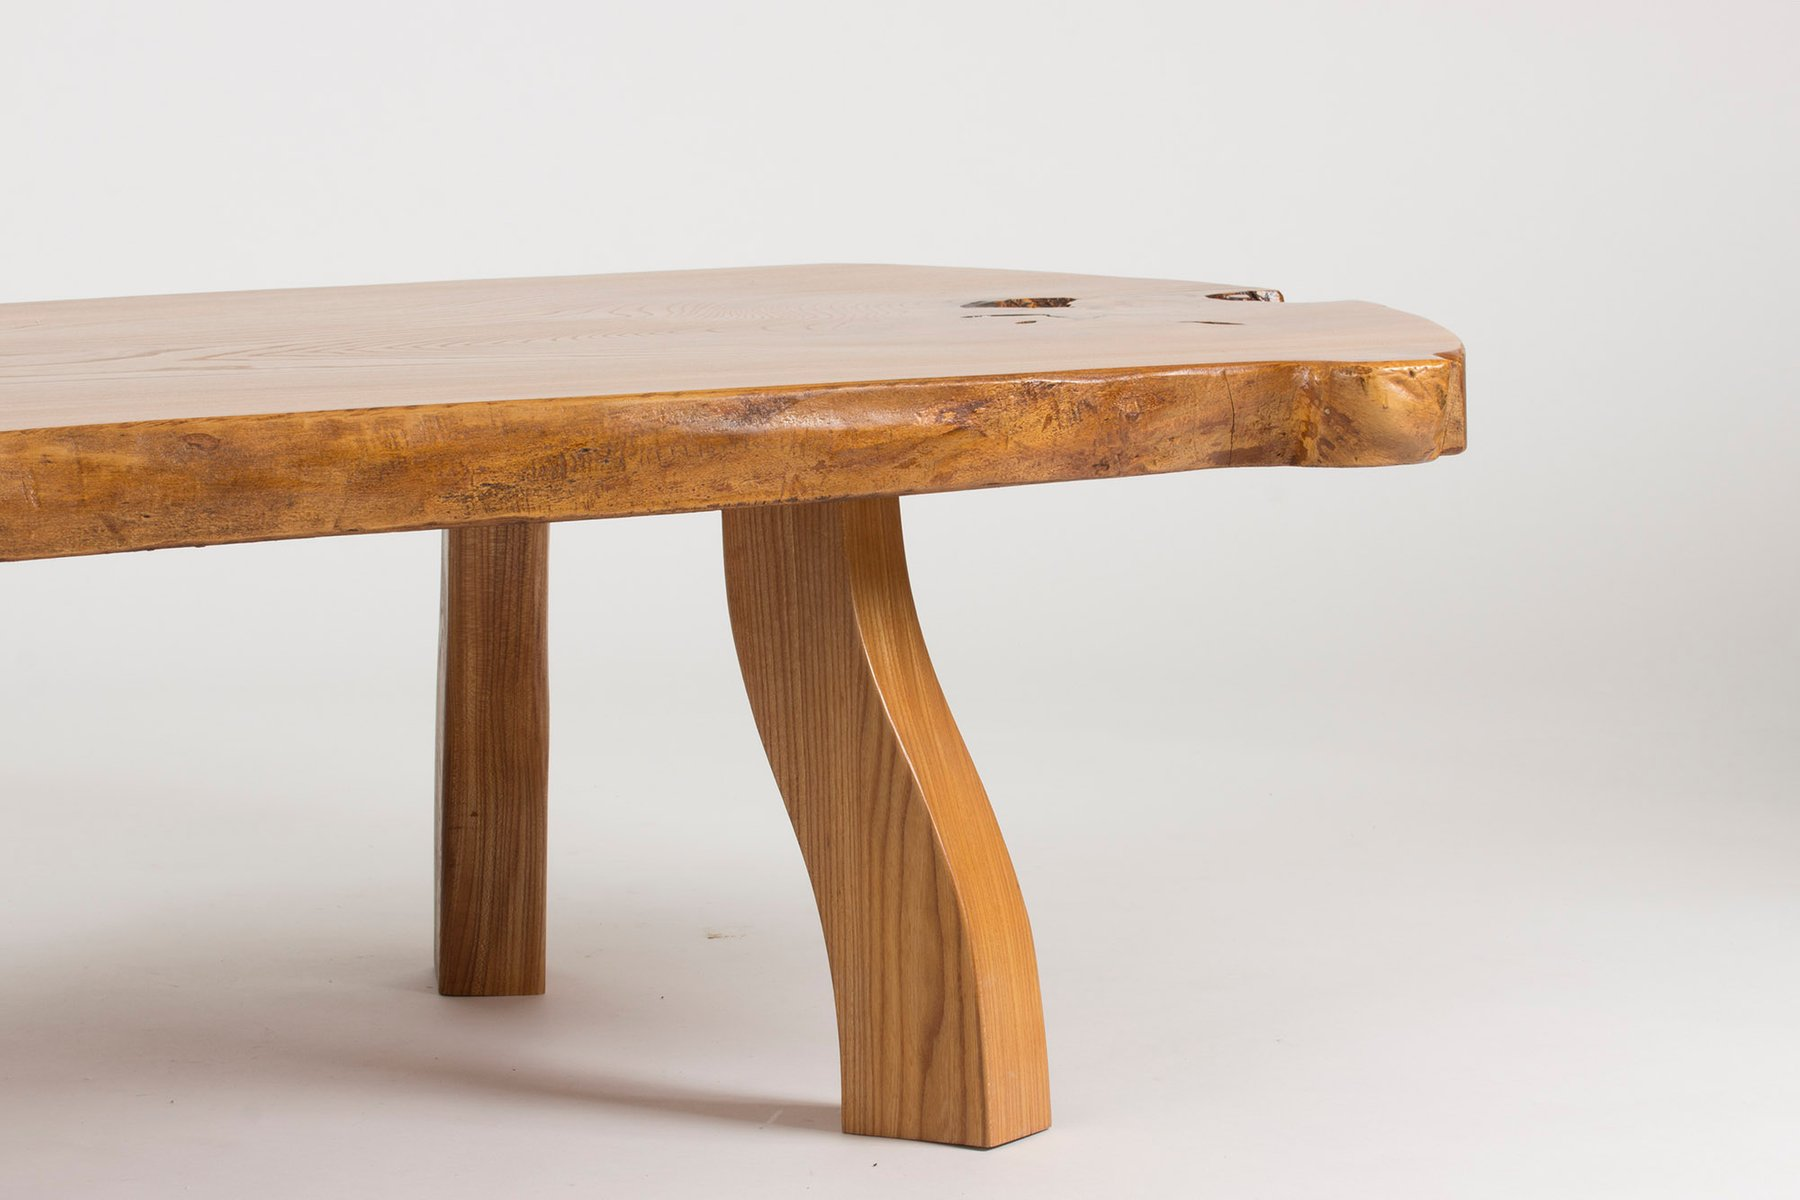 Pine Slab Coffee Table by C A Beijbom 1960s for sale at Pamono